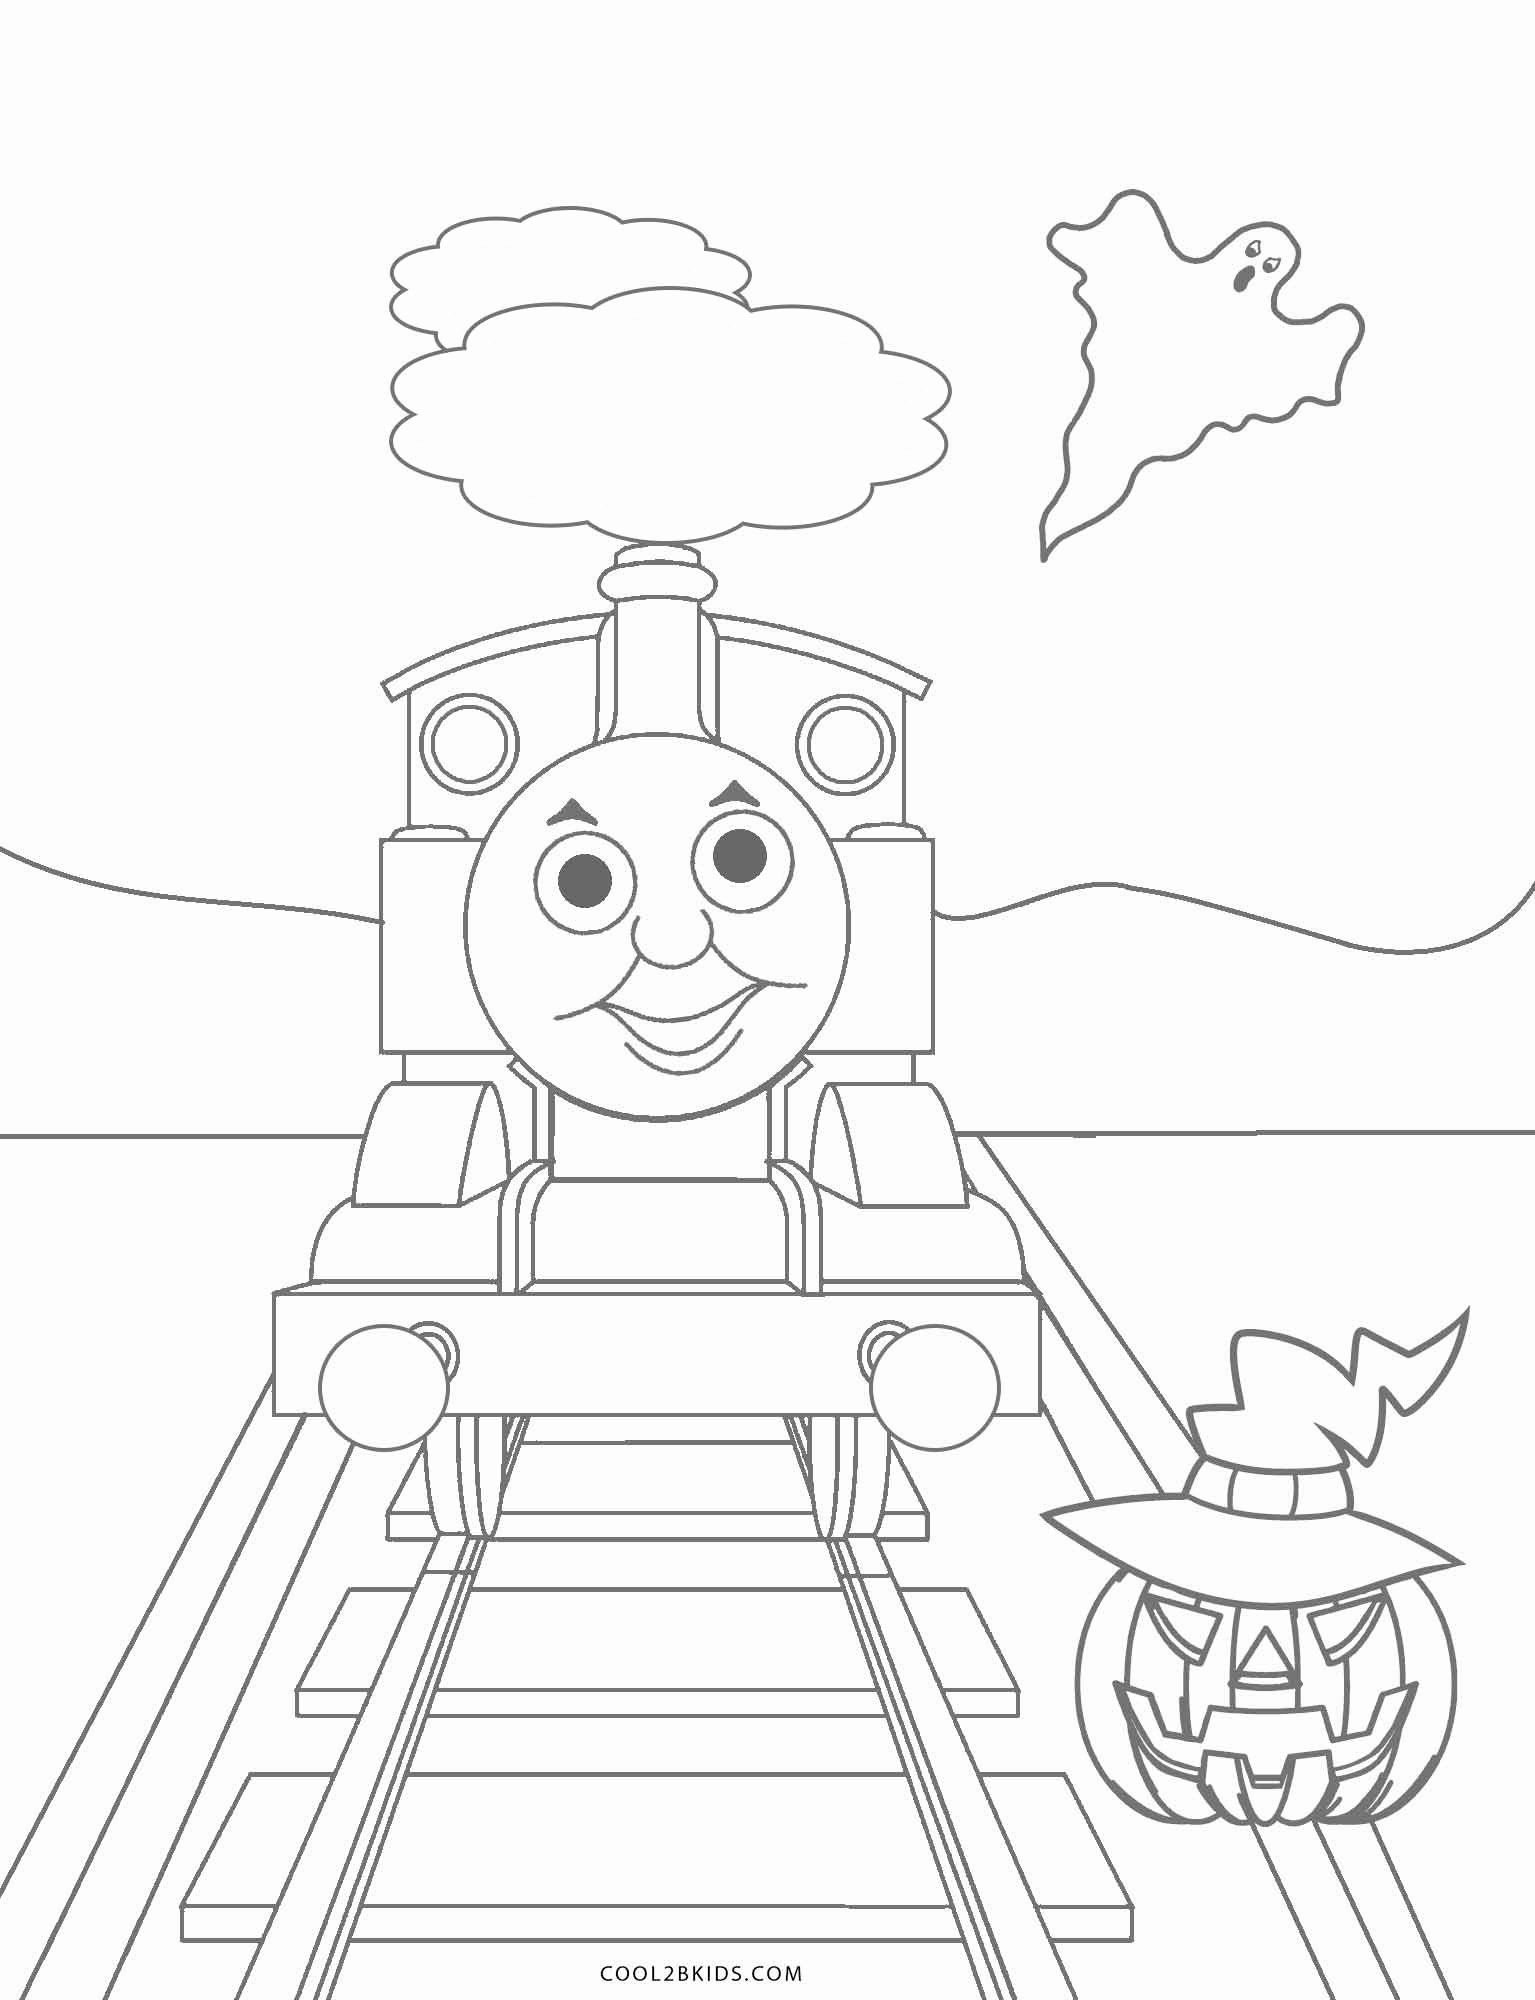 Toy Train Coloring Pages Awesome Free Printable Thomas The Train